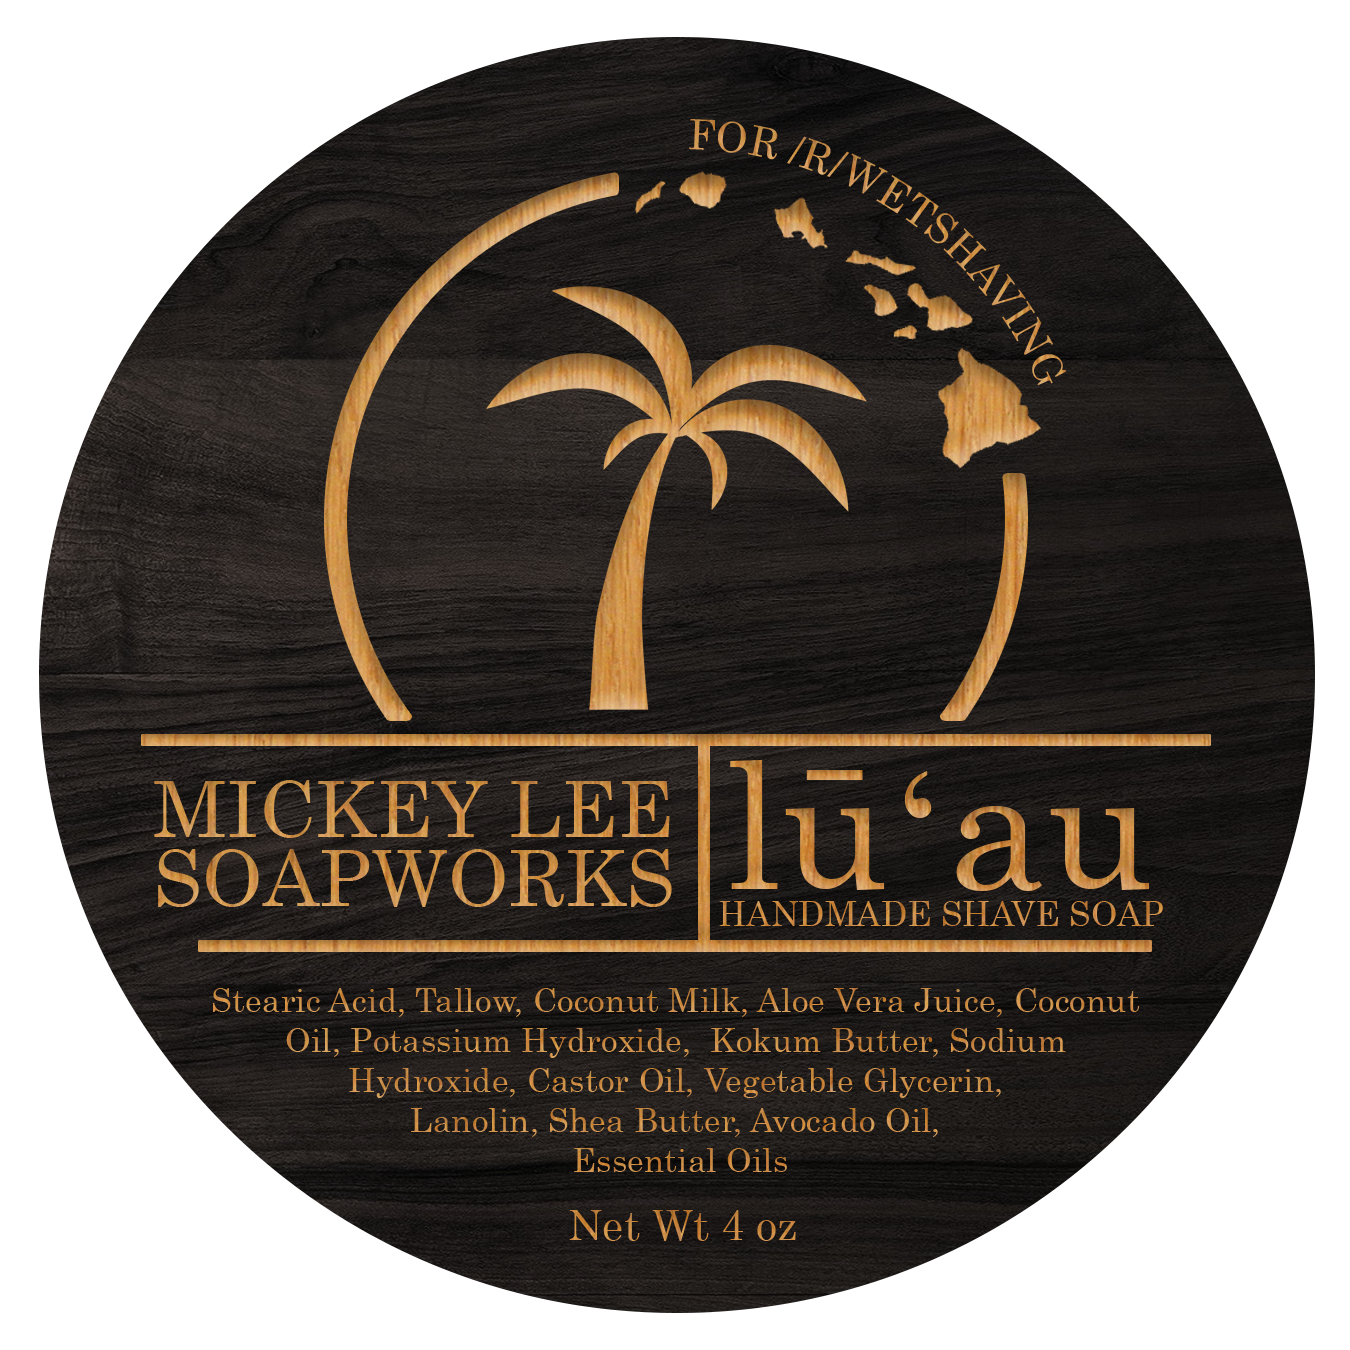 Mickey Lee Soapworks - Lu'au - Soap image